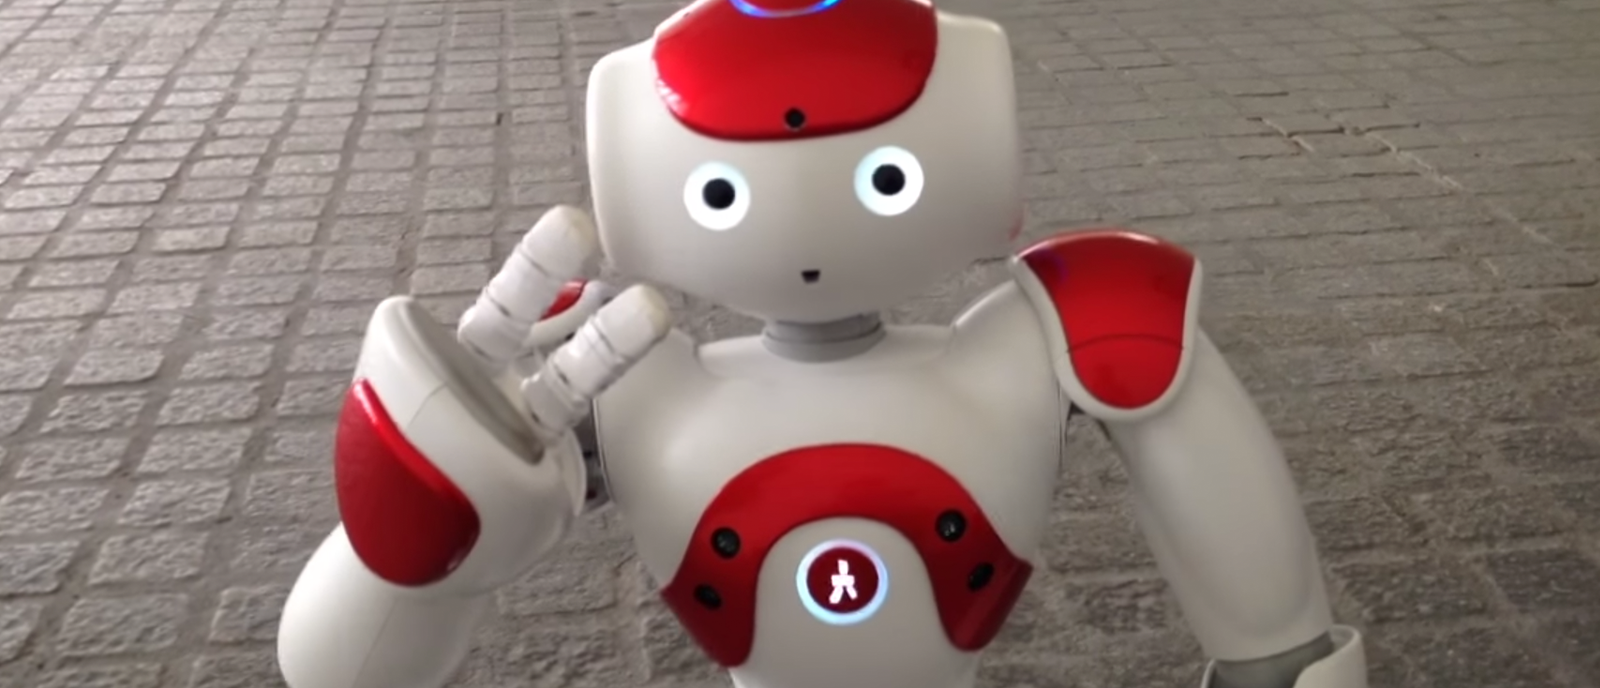 Robot Andy